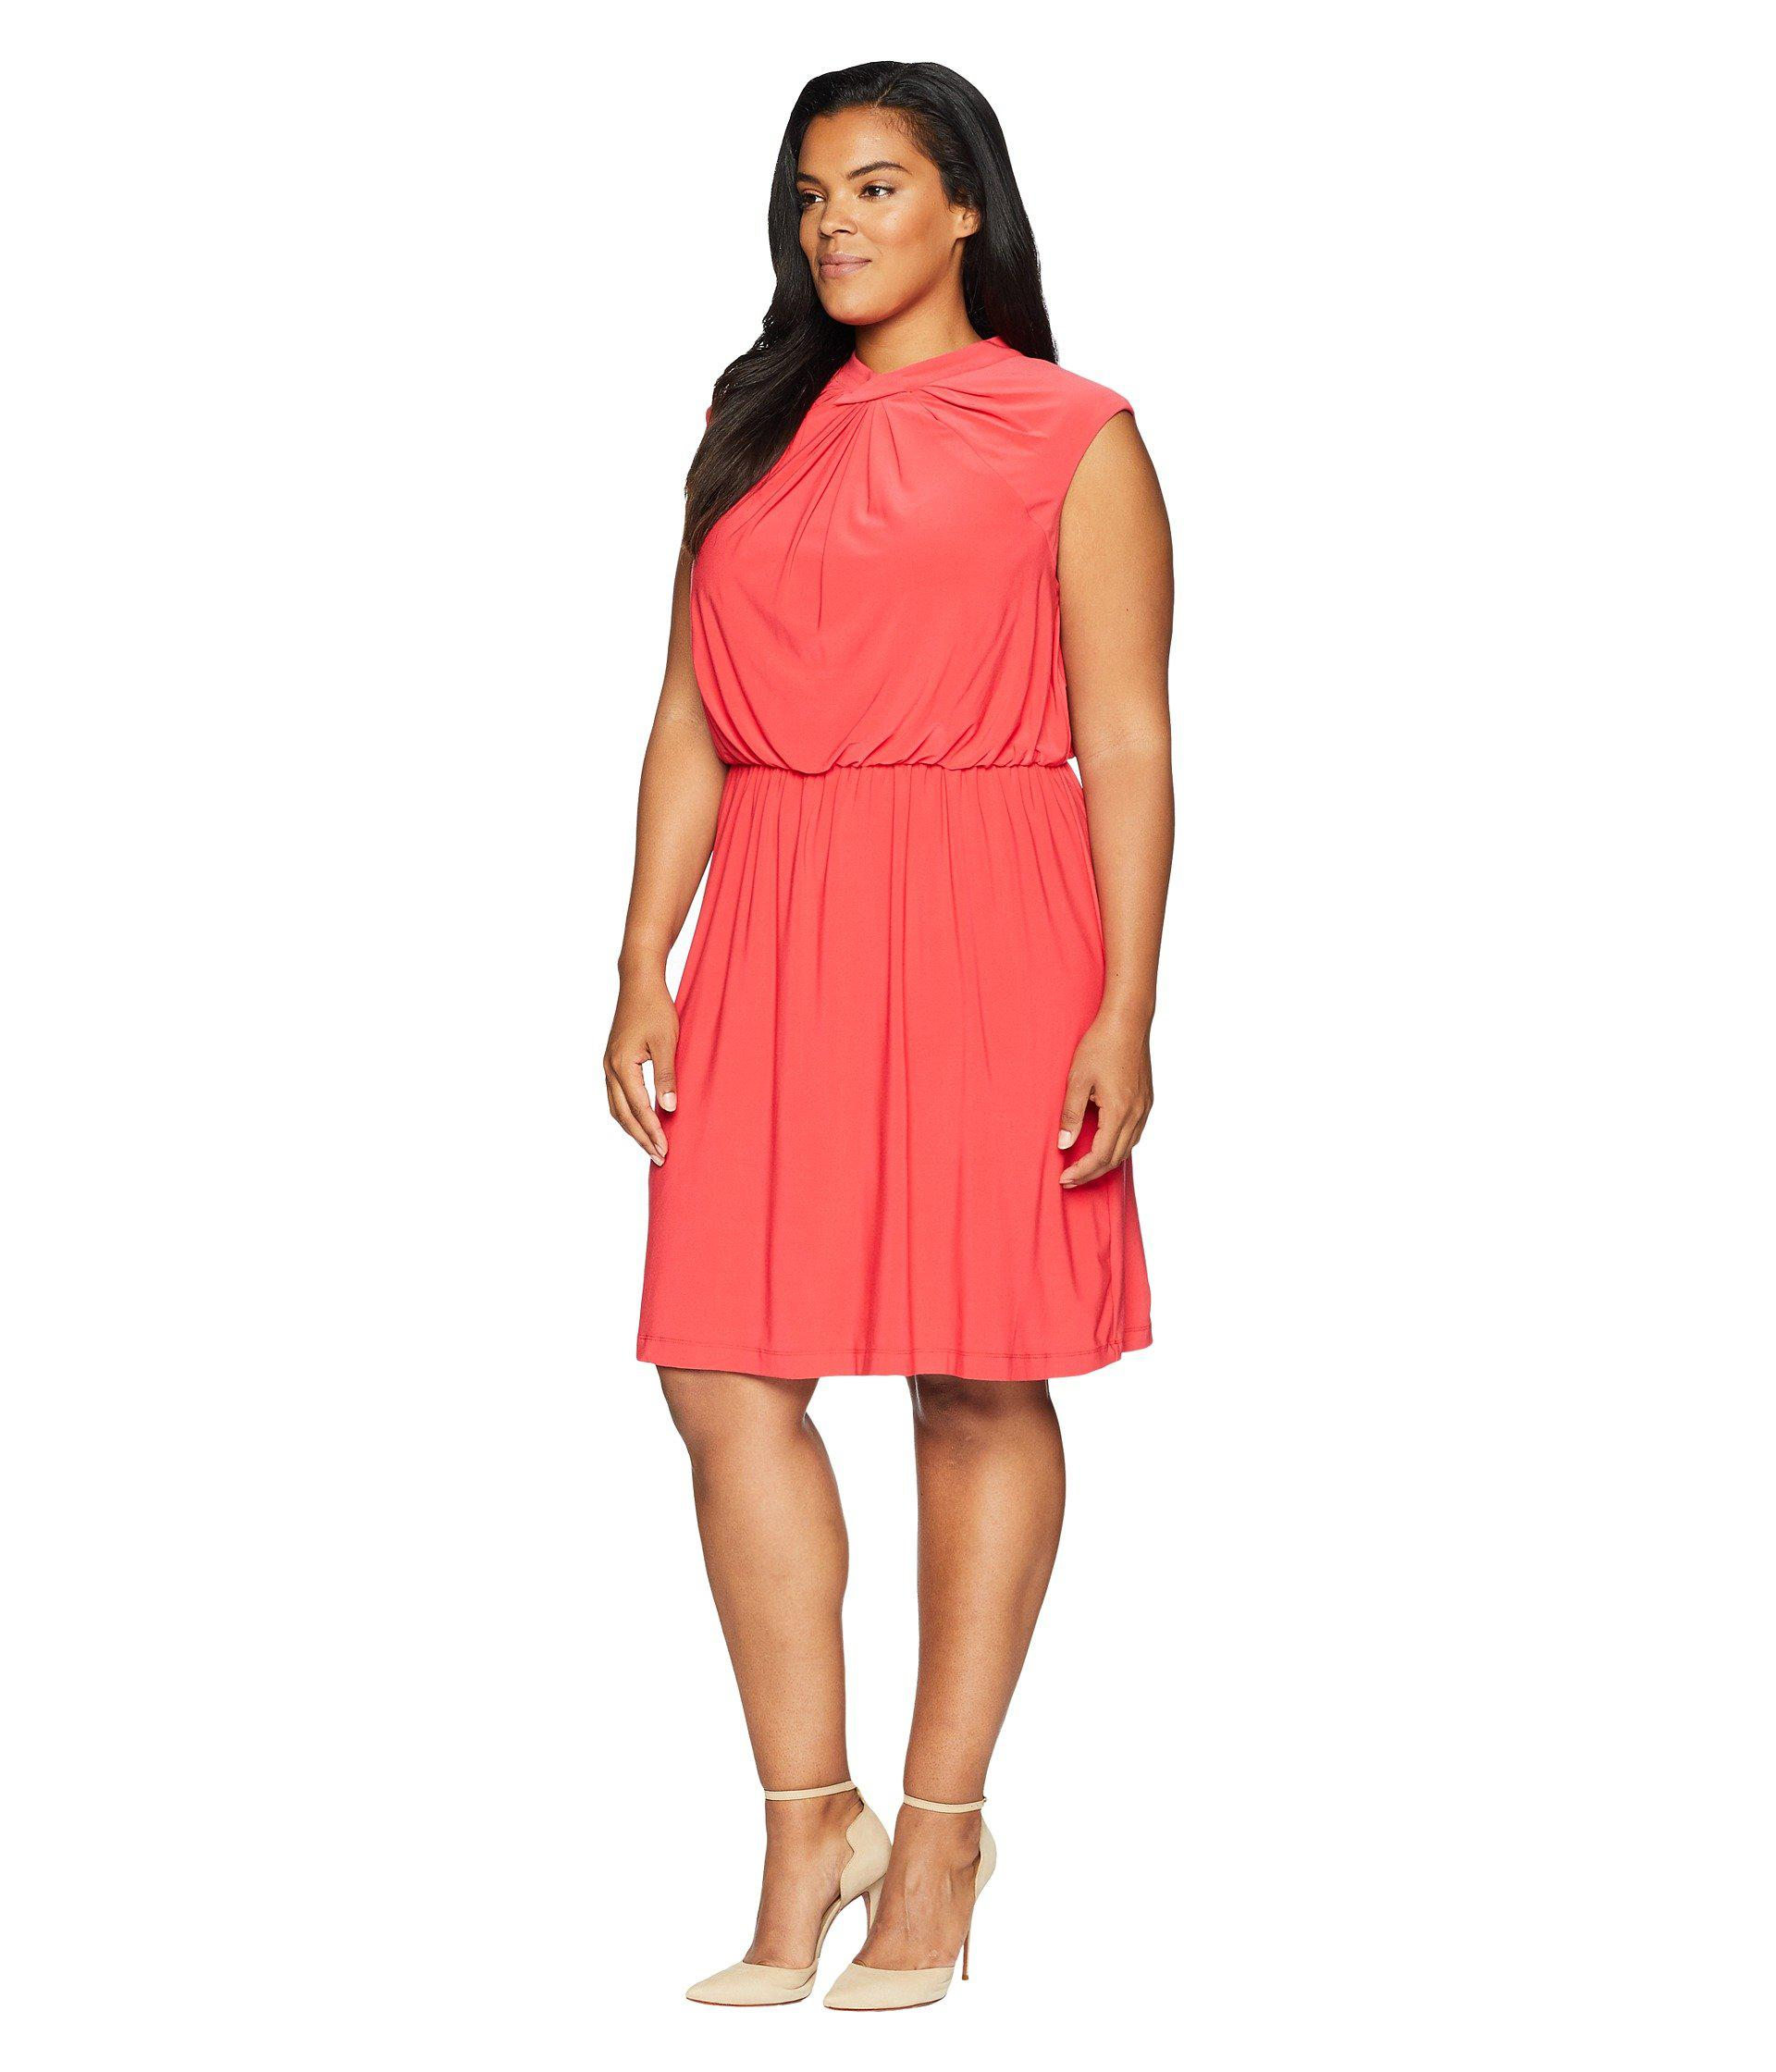 6704171dc43 Lyst - Adrianna Papell Plus Size Matte Jersey Fit And Flare in Red - Save  42.68292682926829%